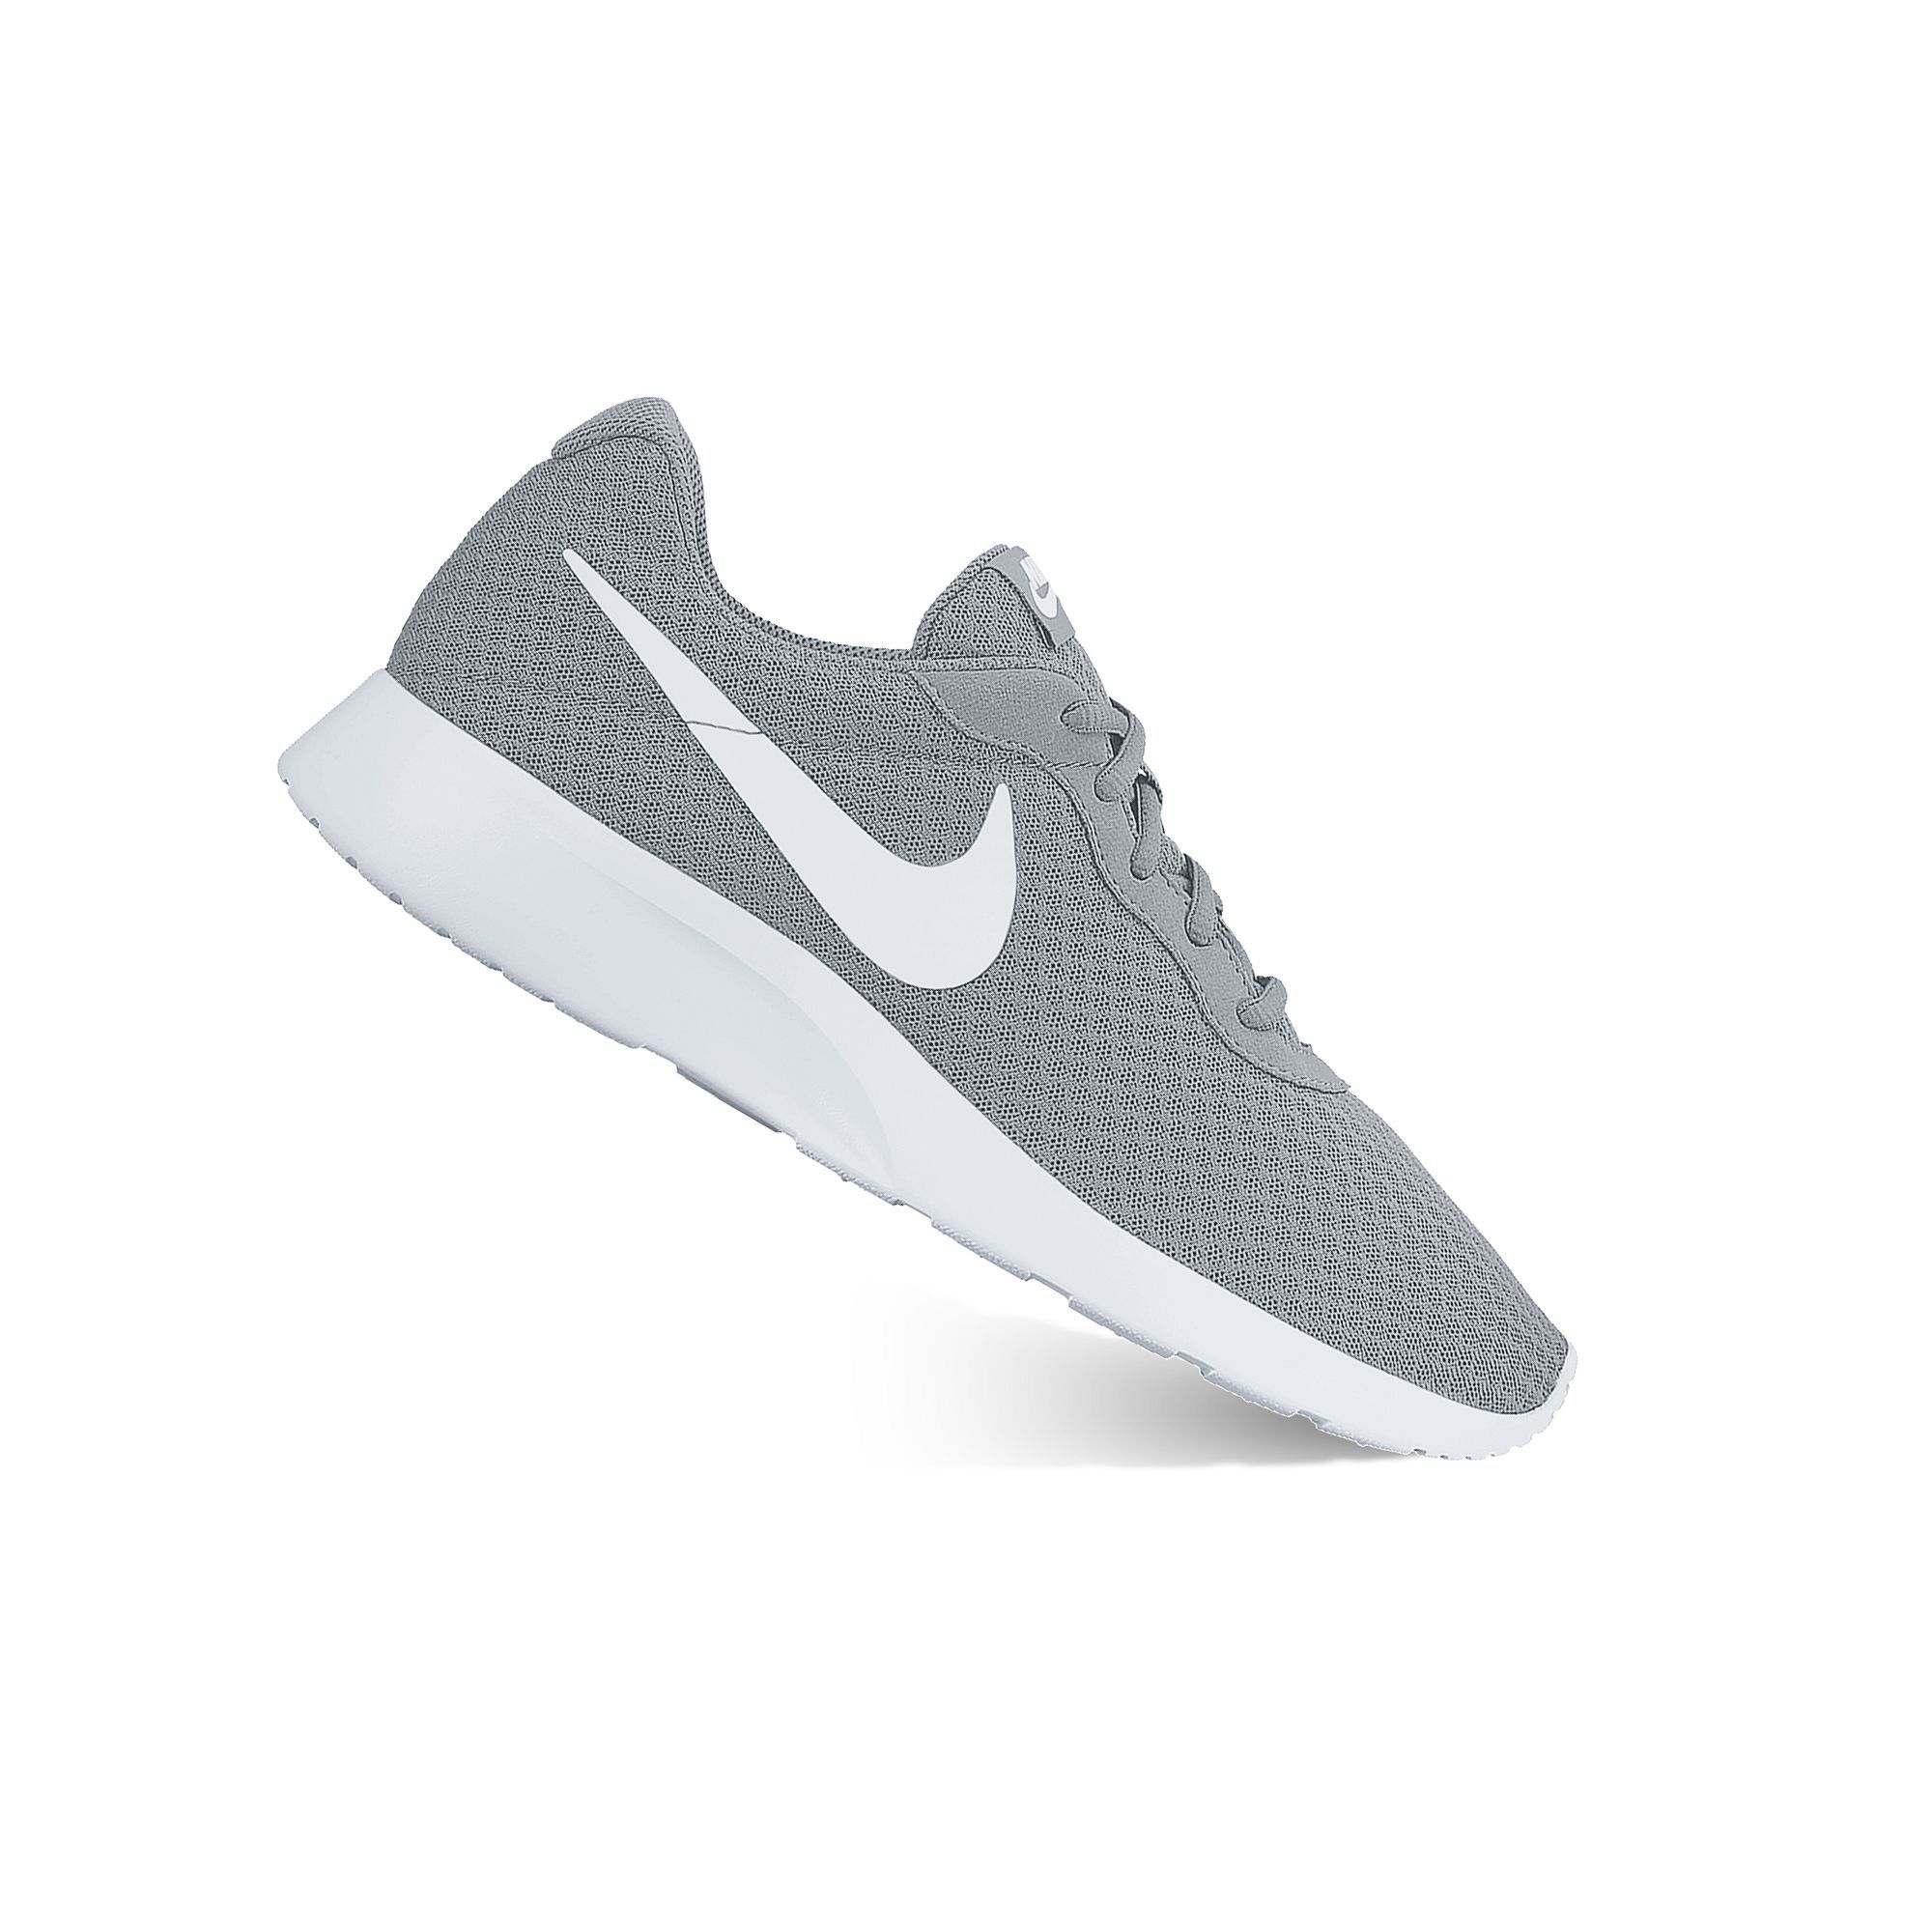 new product 5b0af ca190 Nike Tanjun Men s Athletic Shoes, Size  10.5, Light Grey